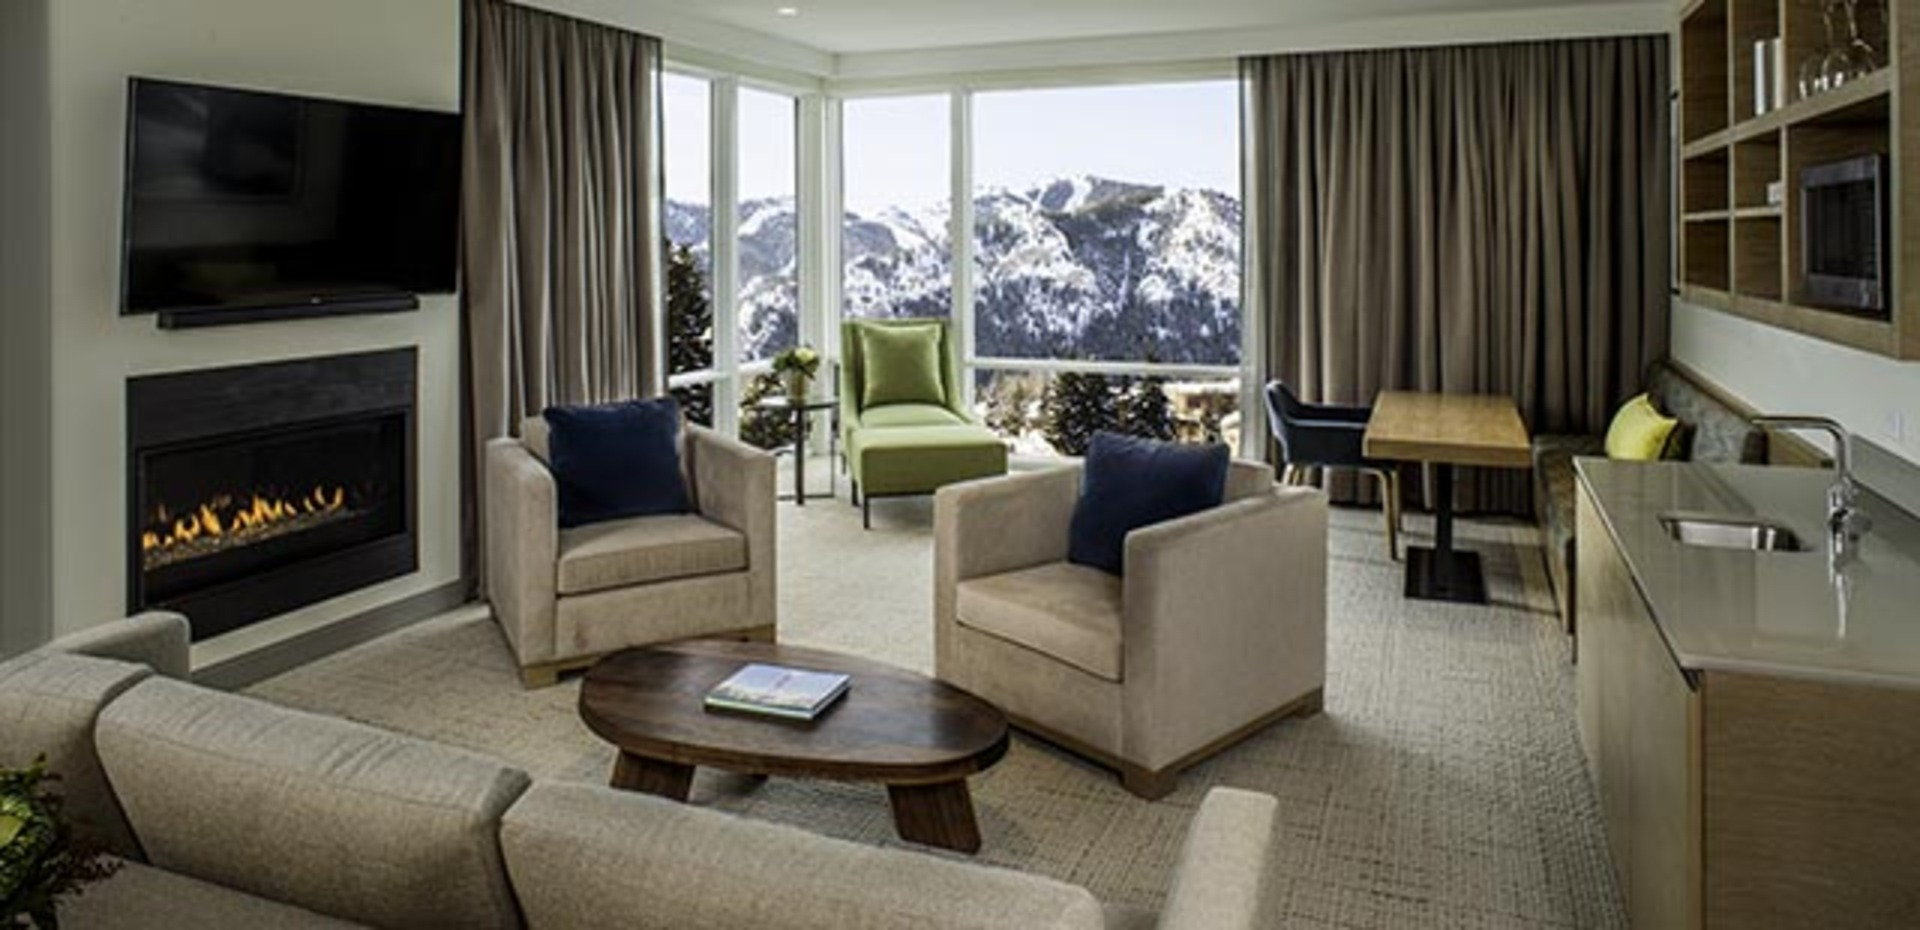 Limelight Hotel Ketchum